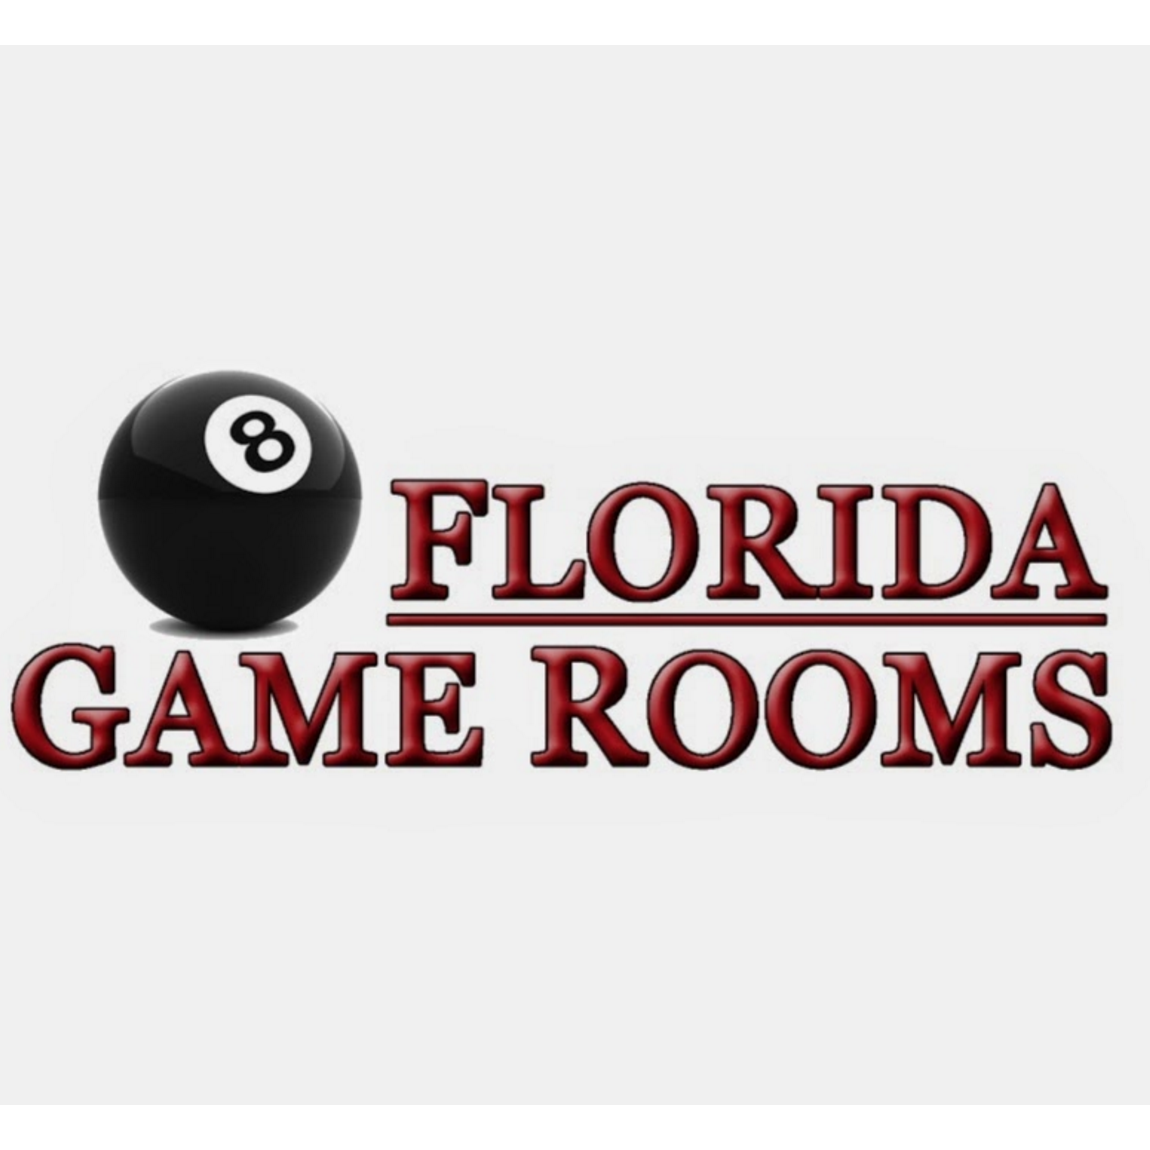 Florida Game Rooms Orlando FL Company Profile : 1150x1150 from www.dandb.com size 1150 x 1150 png 425kB